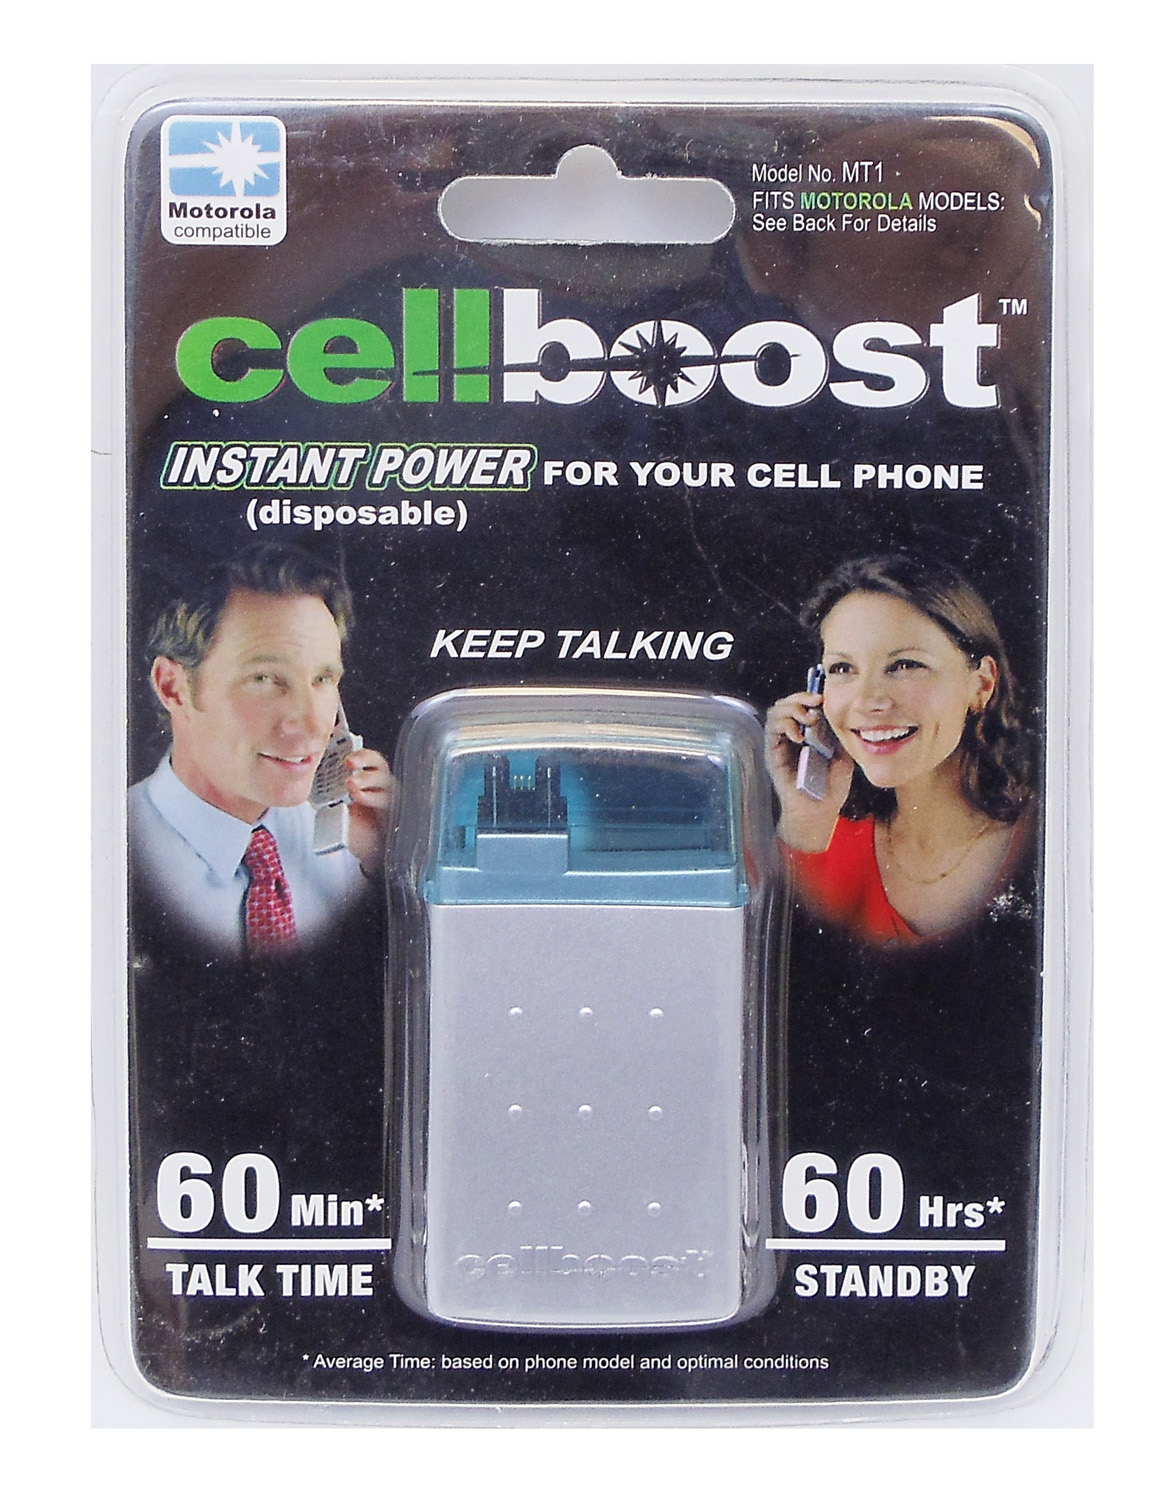 CELLBOOST - PROVIDES INSTANT POWER UP TO 60 MINUTES TALK TIME & 60 HOURS STANDBY FOR MOTOROLA AND OTHER T SERIES PHONES